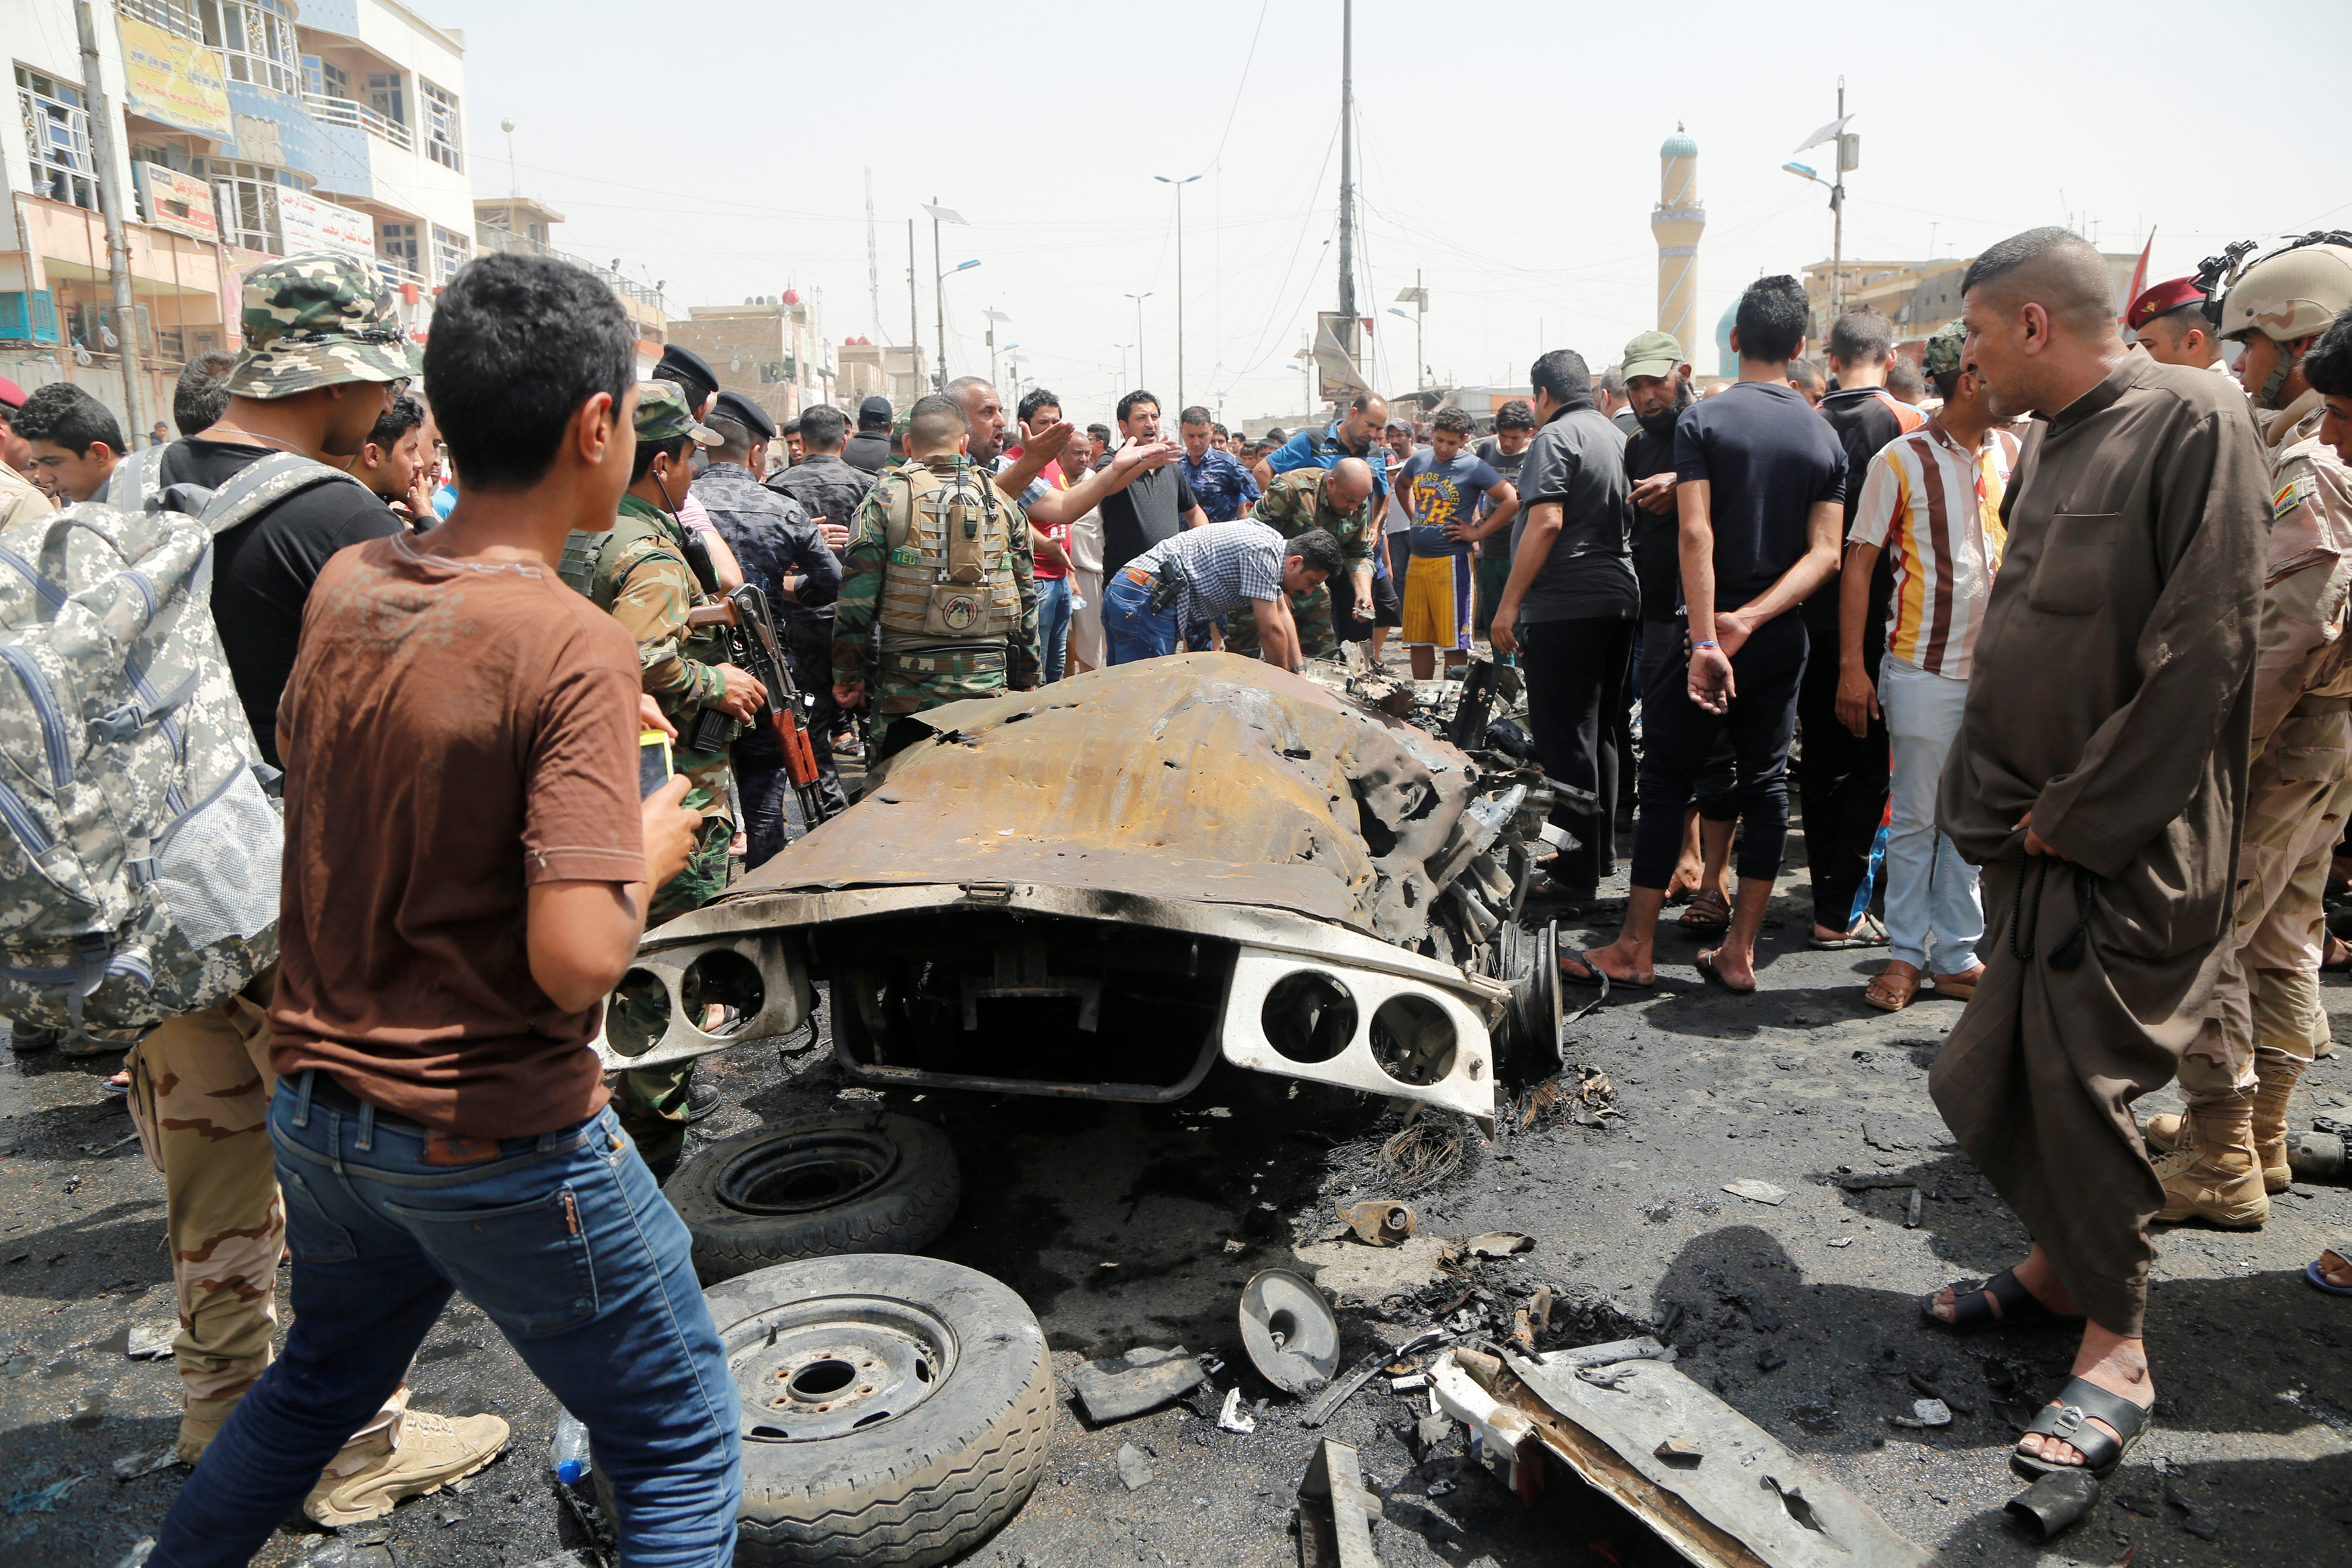 People gather at the scene of a car bomb attack in Baghdad's mainly Shi'ite district of Sadr City, Iraq, May 11, 2016. REUTERS/Wissm al-Okili - RTX2DRWQ